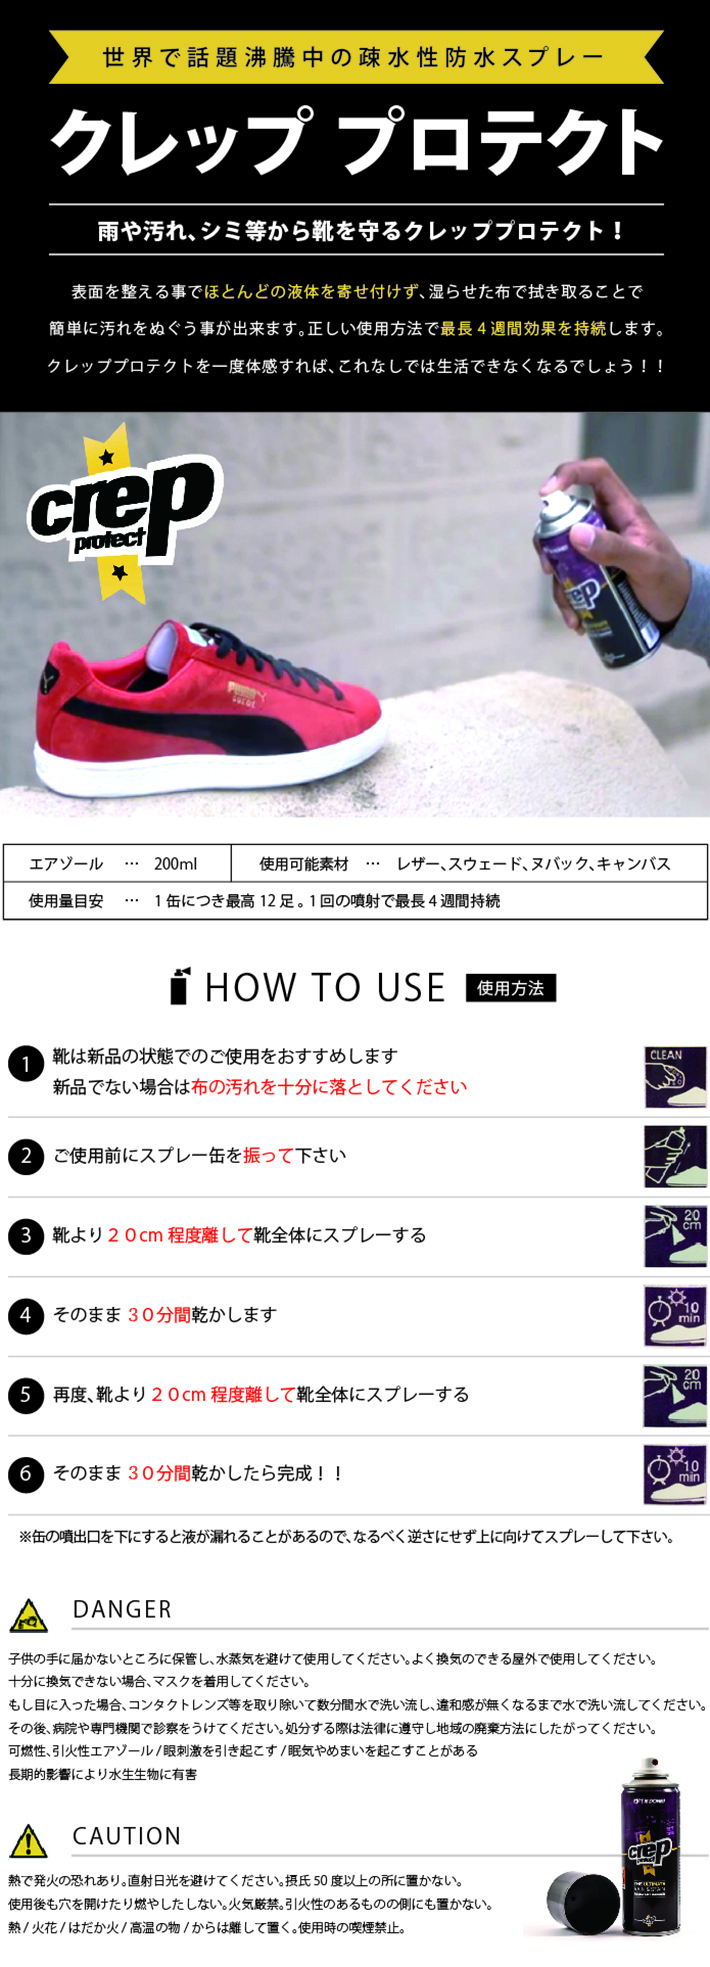 Crep Protect Cure クレップ プロテクト ケア クリーニング キット